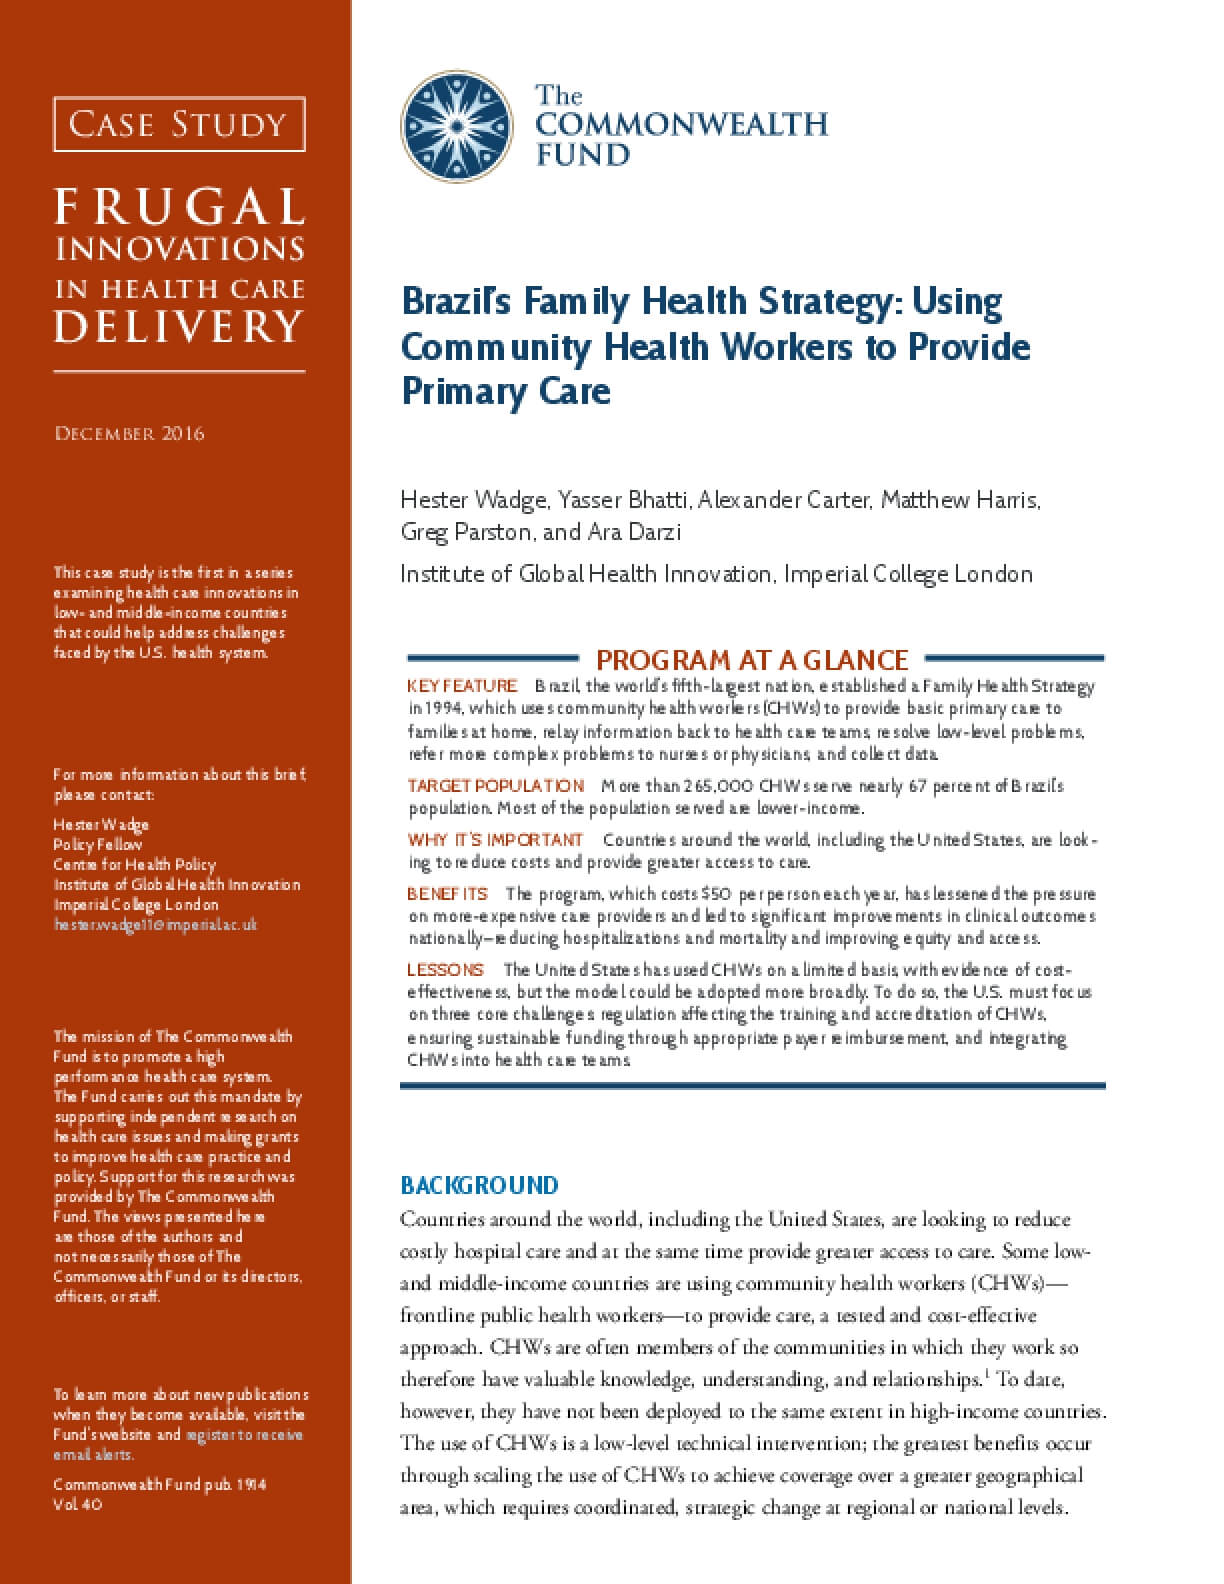 Brazil's Family Health Strategy: Using Community Health Care Workers to Provide Primary Care